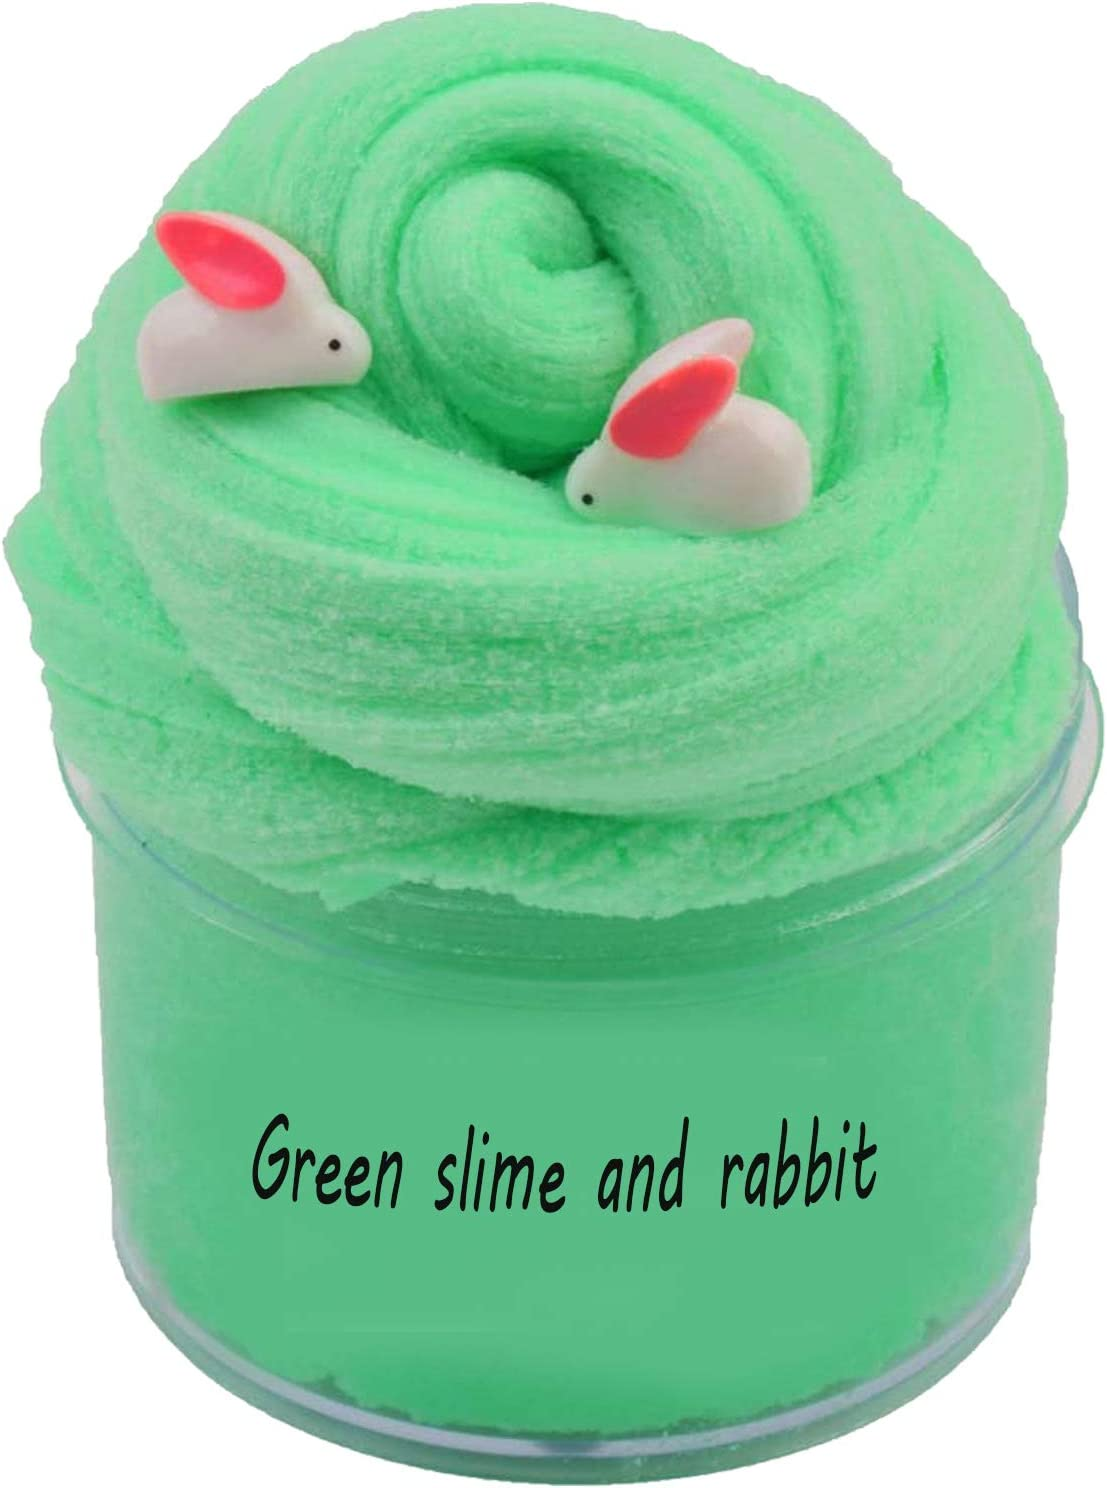 Super Soft and Non-Sticky HongFeng world Newest Cloud Slime,Easter RABIT Slime Stress Relief Toy for Kids and Adults About 8oz